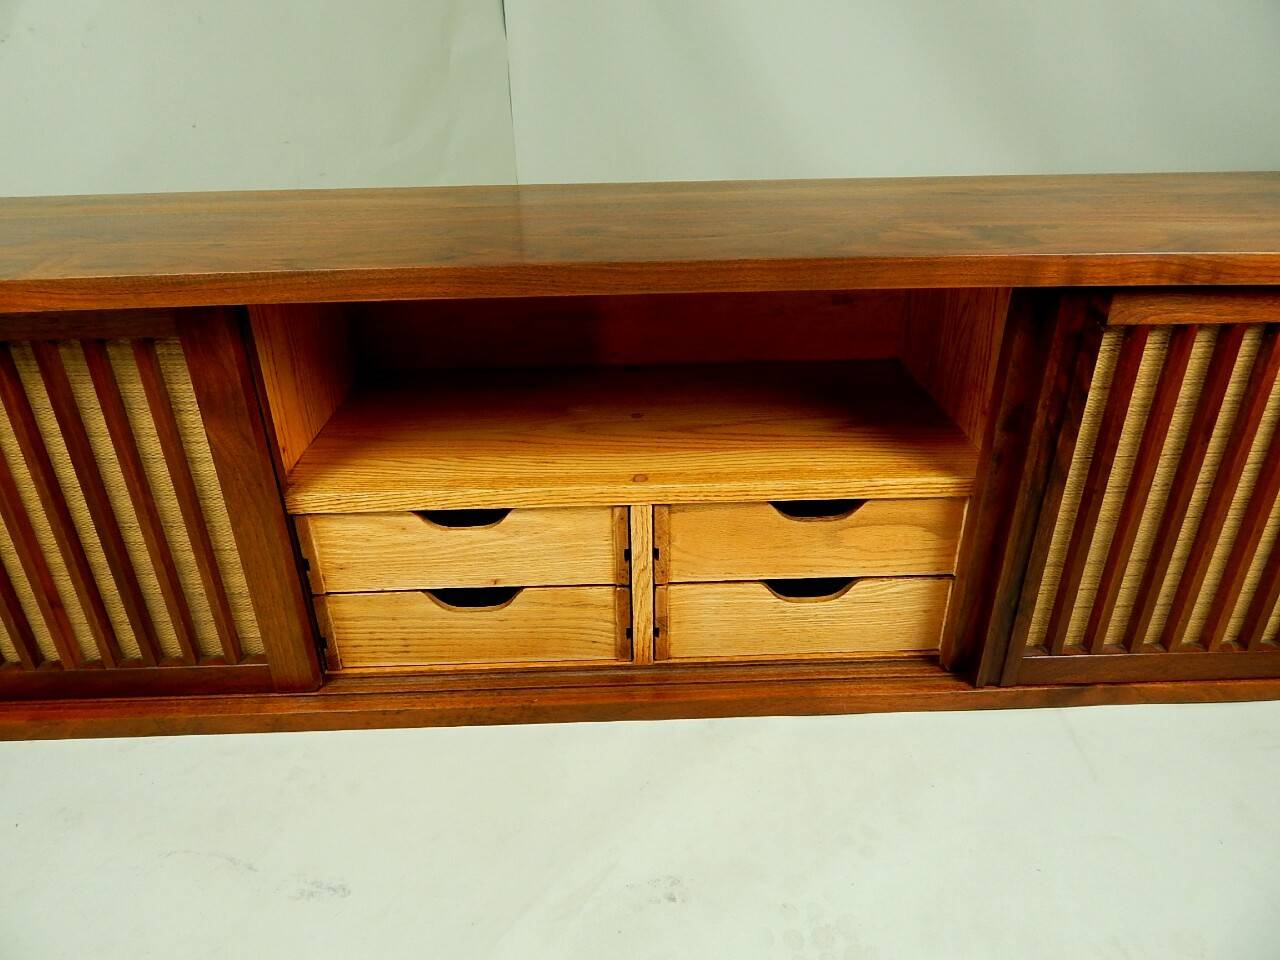 20th Century Walnut Wall Cabinet by George Nakashima For Sale 6